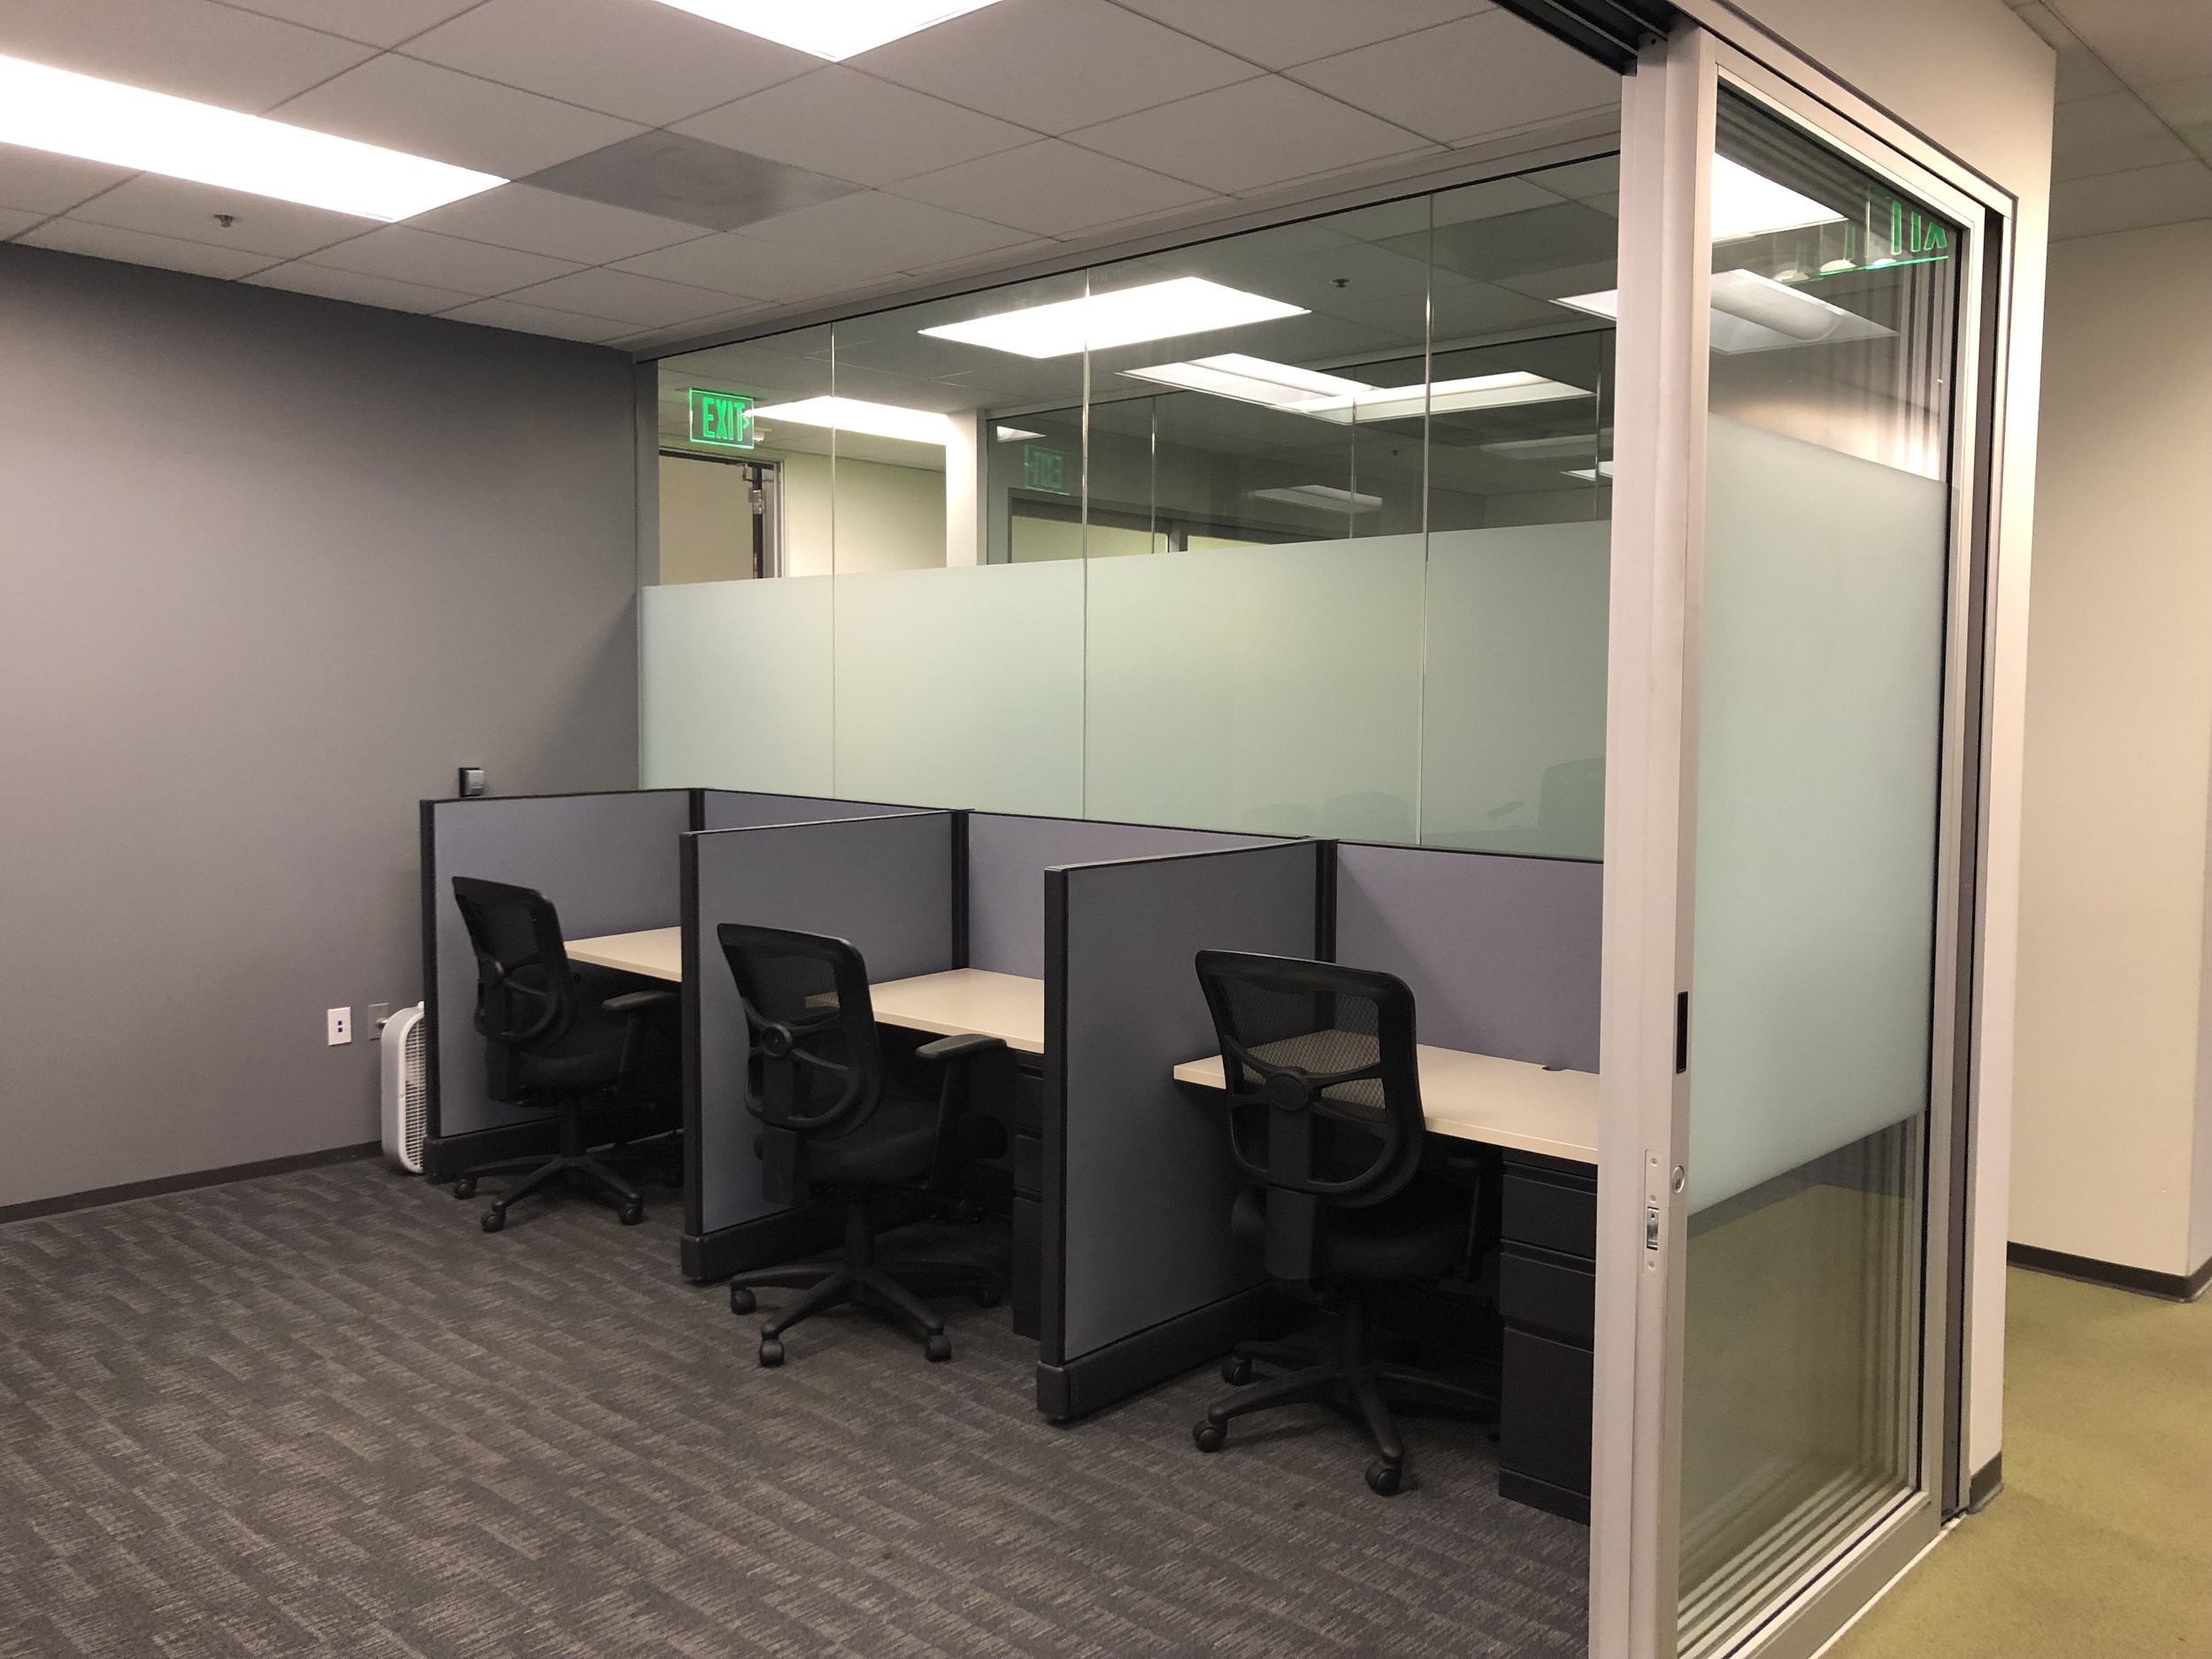 FLEX PLAN - $125/monthWorkdays Per Month: 25 Hours Co-workingAccess: 8am-5pm Monday - FridayWifi: DUH!Mailbox: Additional $15/monthConference Rooms: 20% Discount